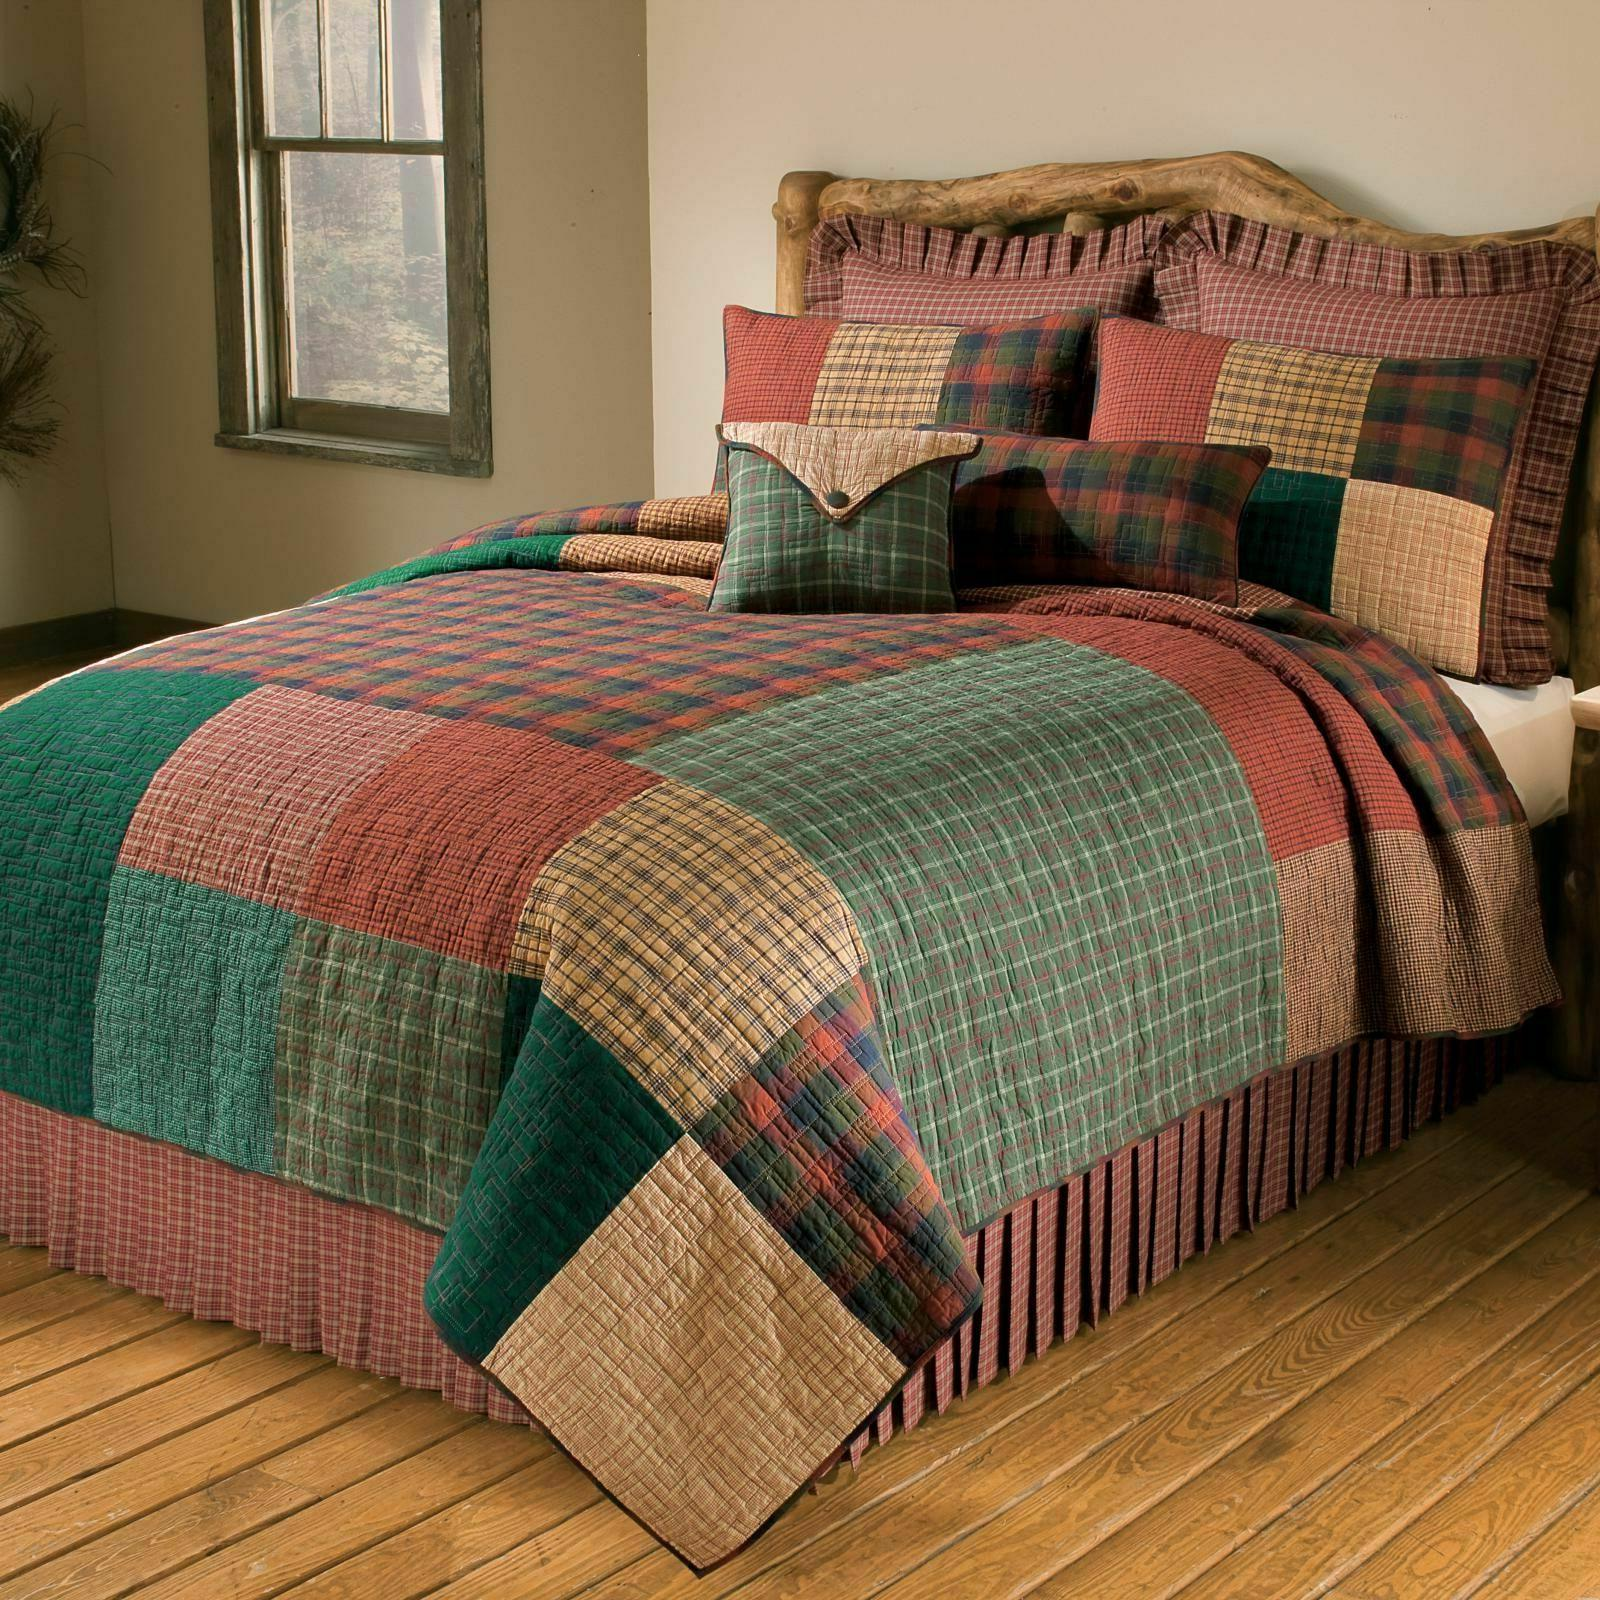 CAMPFIRE SQUARE Quilts & Accessories - Farmhouse Country Bed